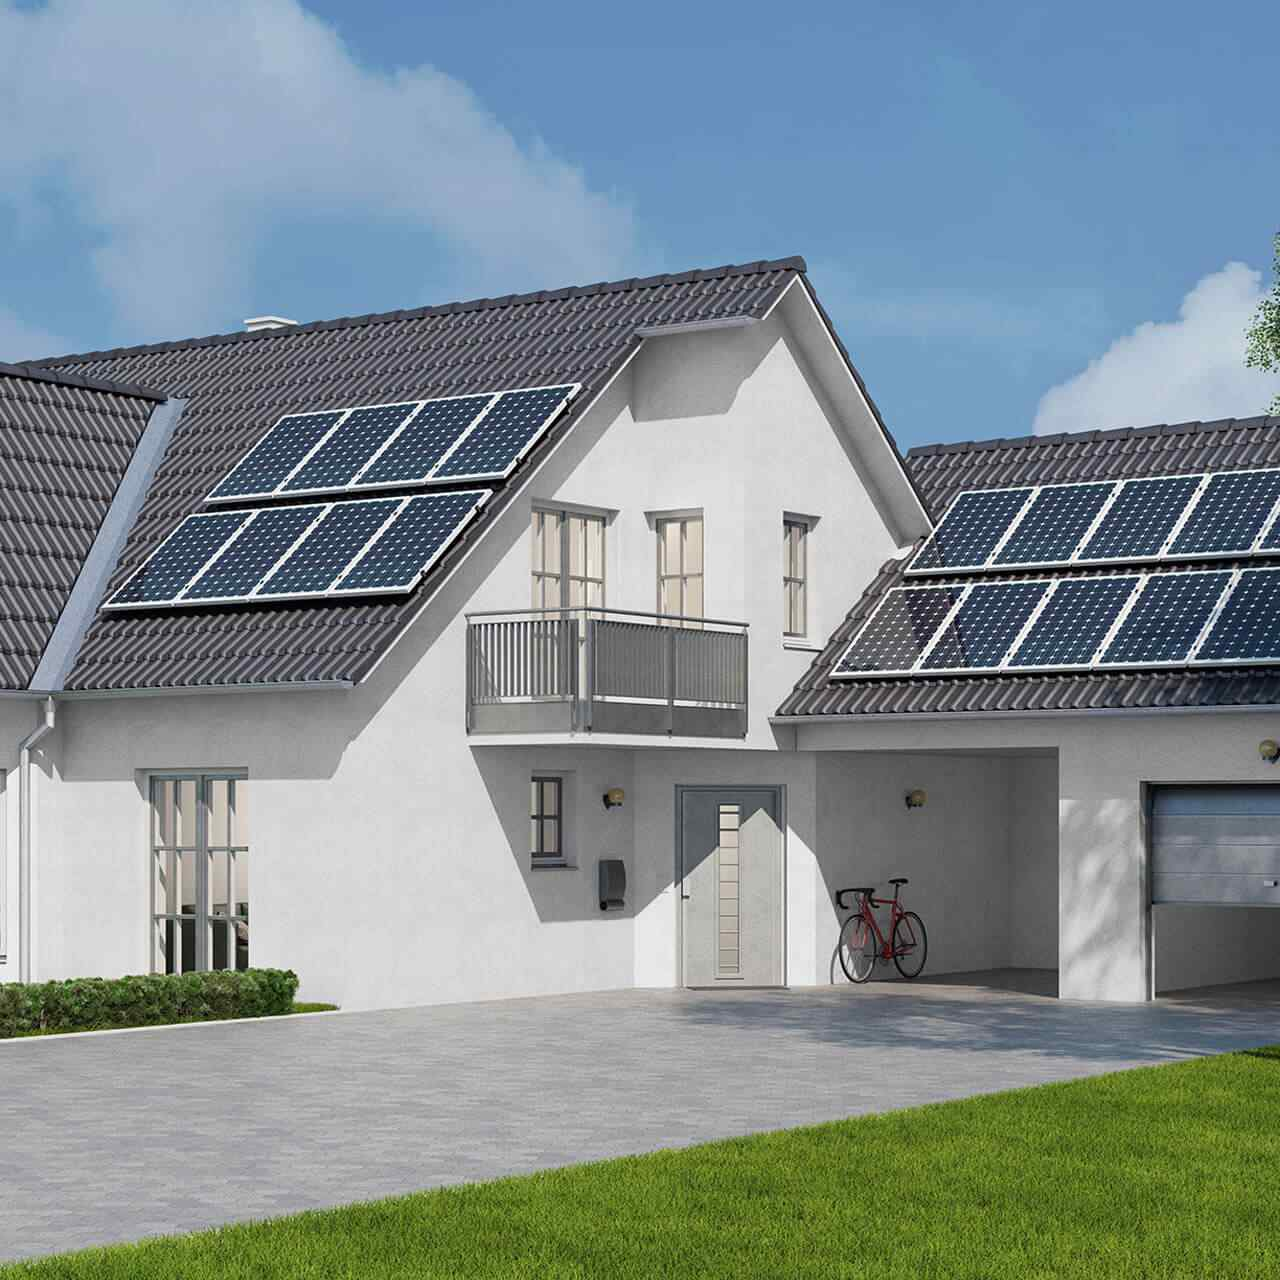 https://solarpanelsmiamiflorida.com/wp-content/uploads/2018/10/gallery_projects_16-1280x1280.jpg